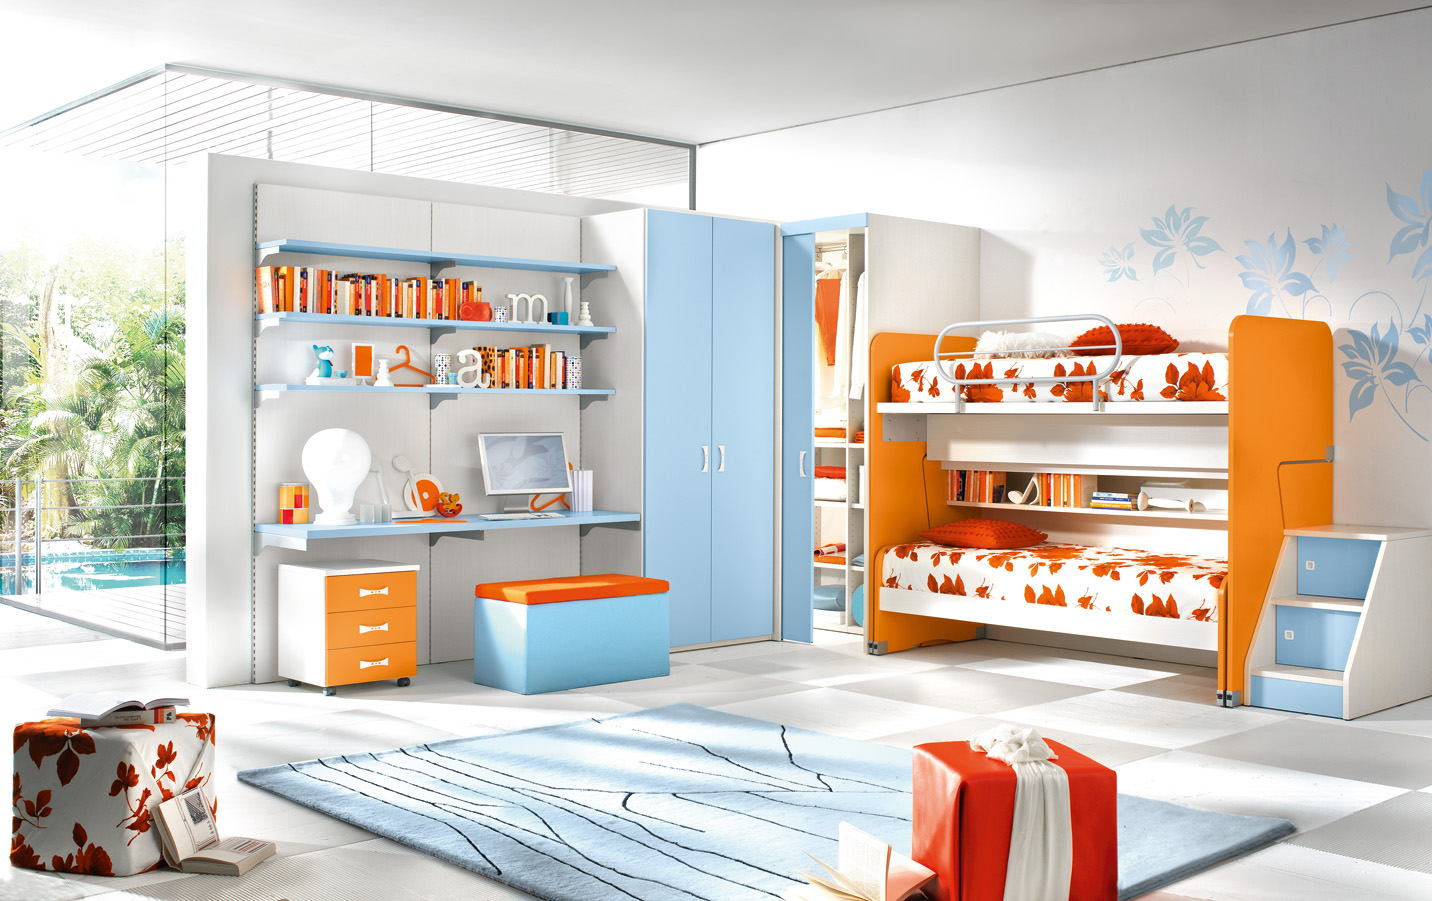 Cabina armadio per cameretta pi ordine nella stanza dei - Childrens small bedroom furniture solutions ...